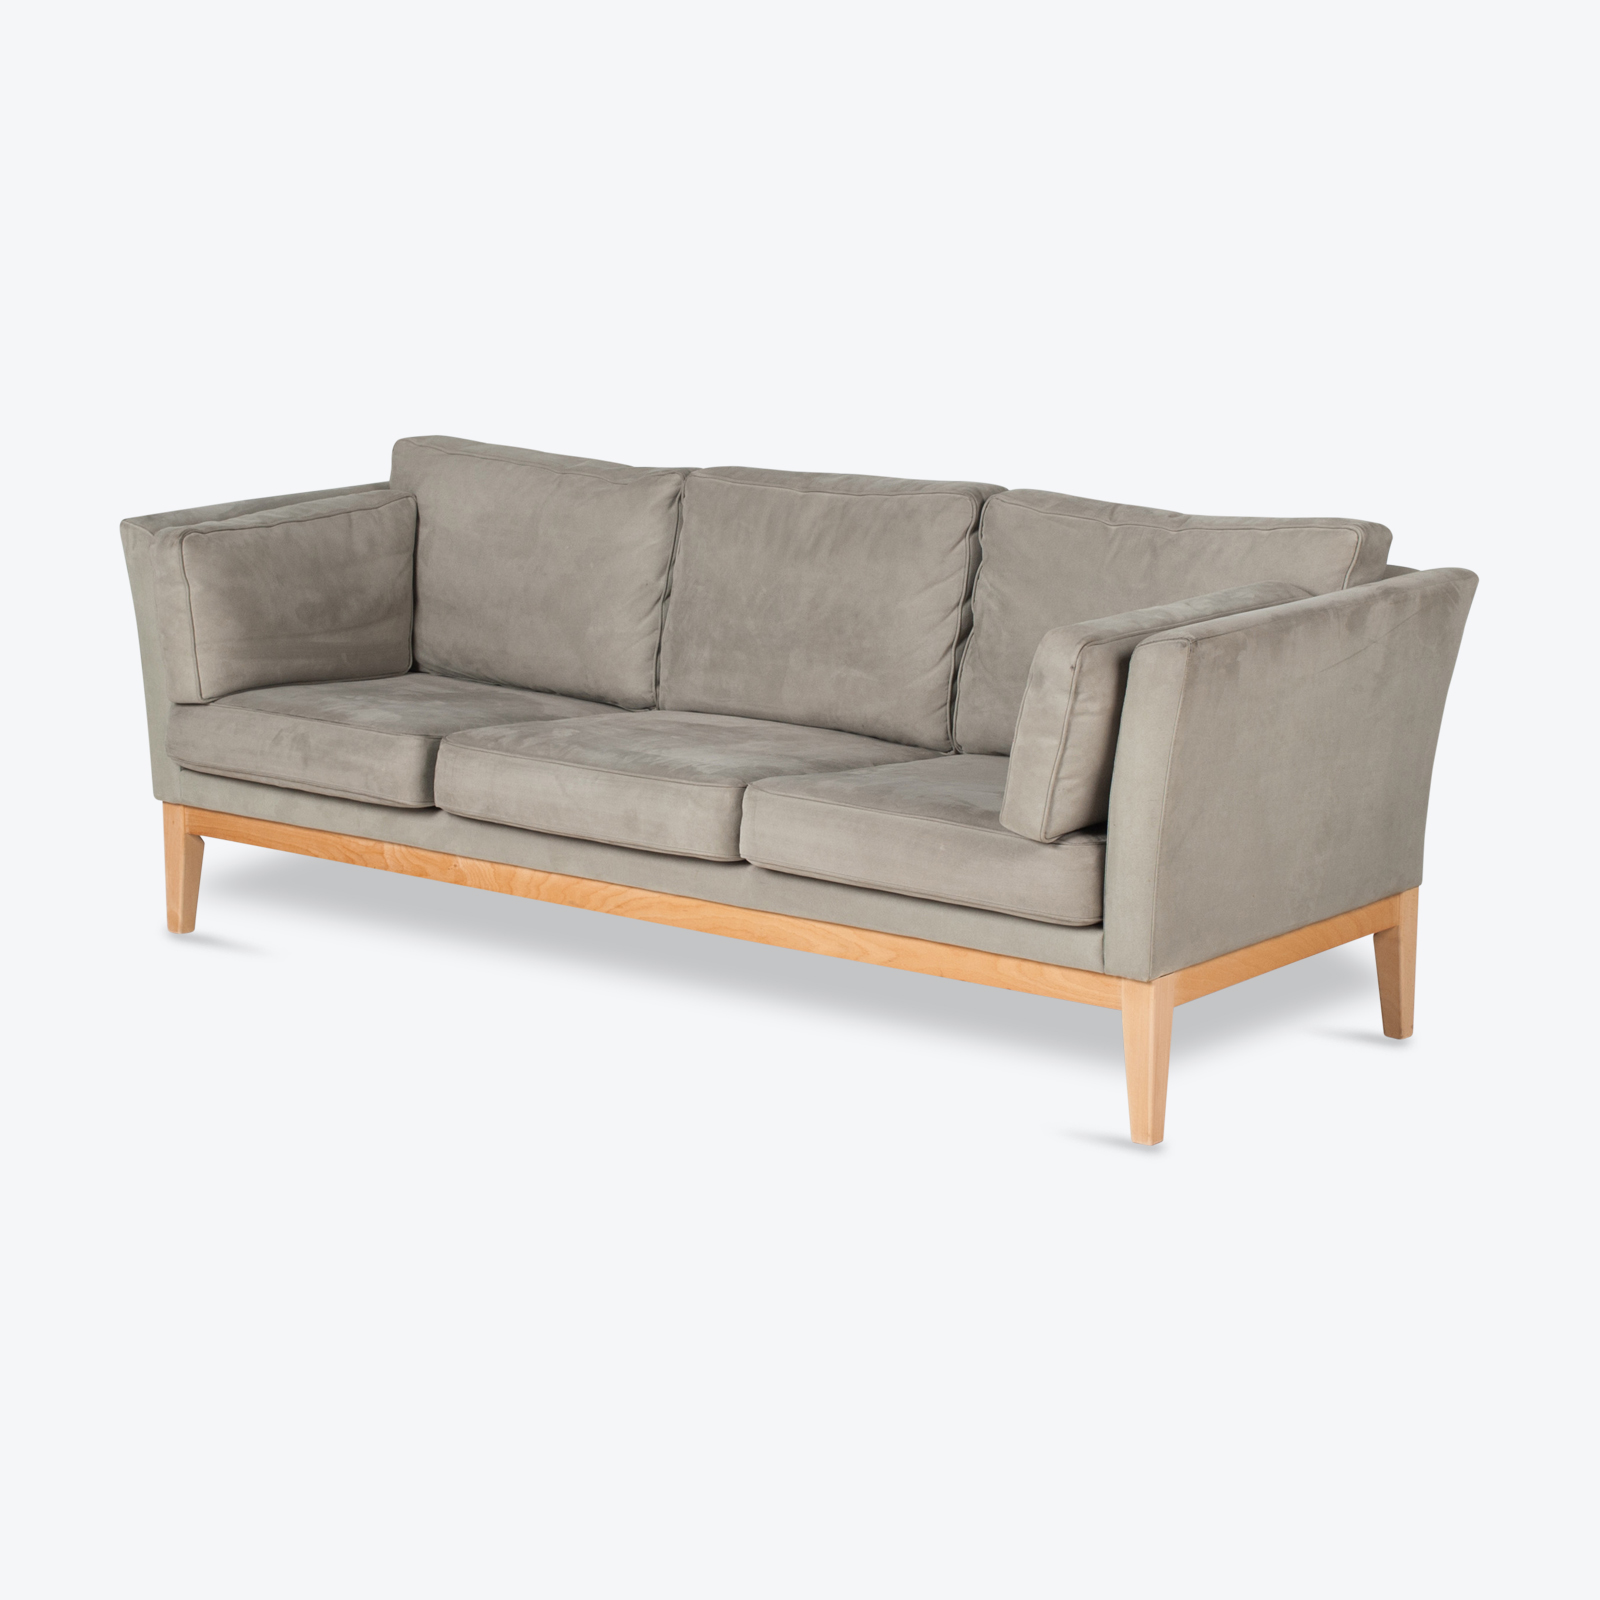 3 Seat Sofa By Stouby In Grey Macro Suede, 1960s, Denmark Hero